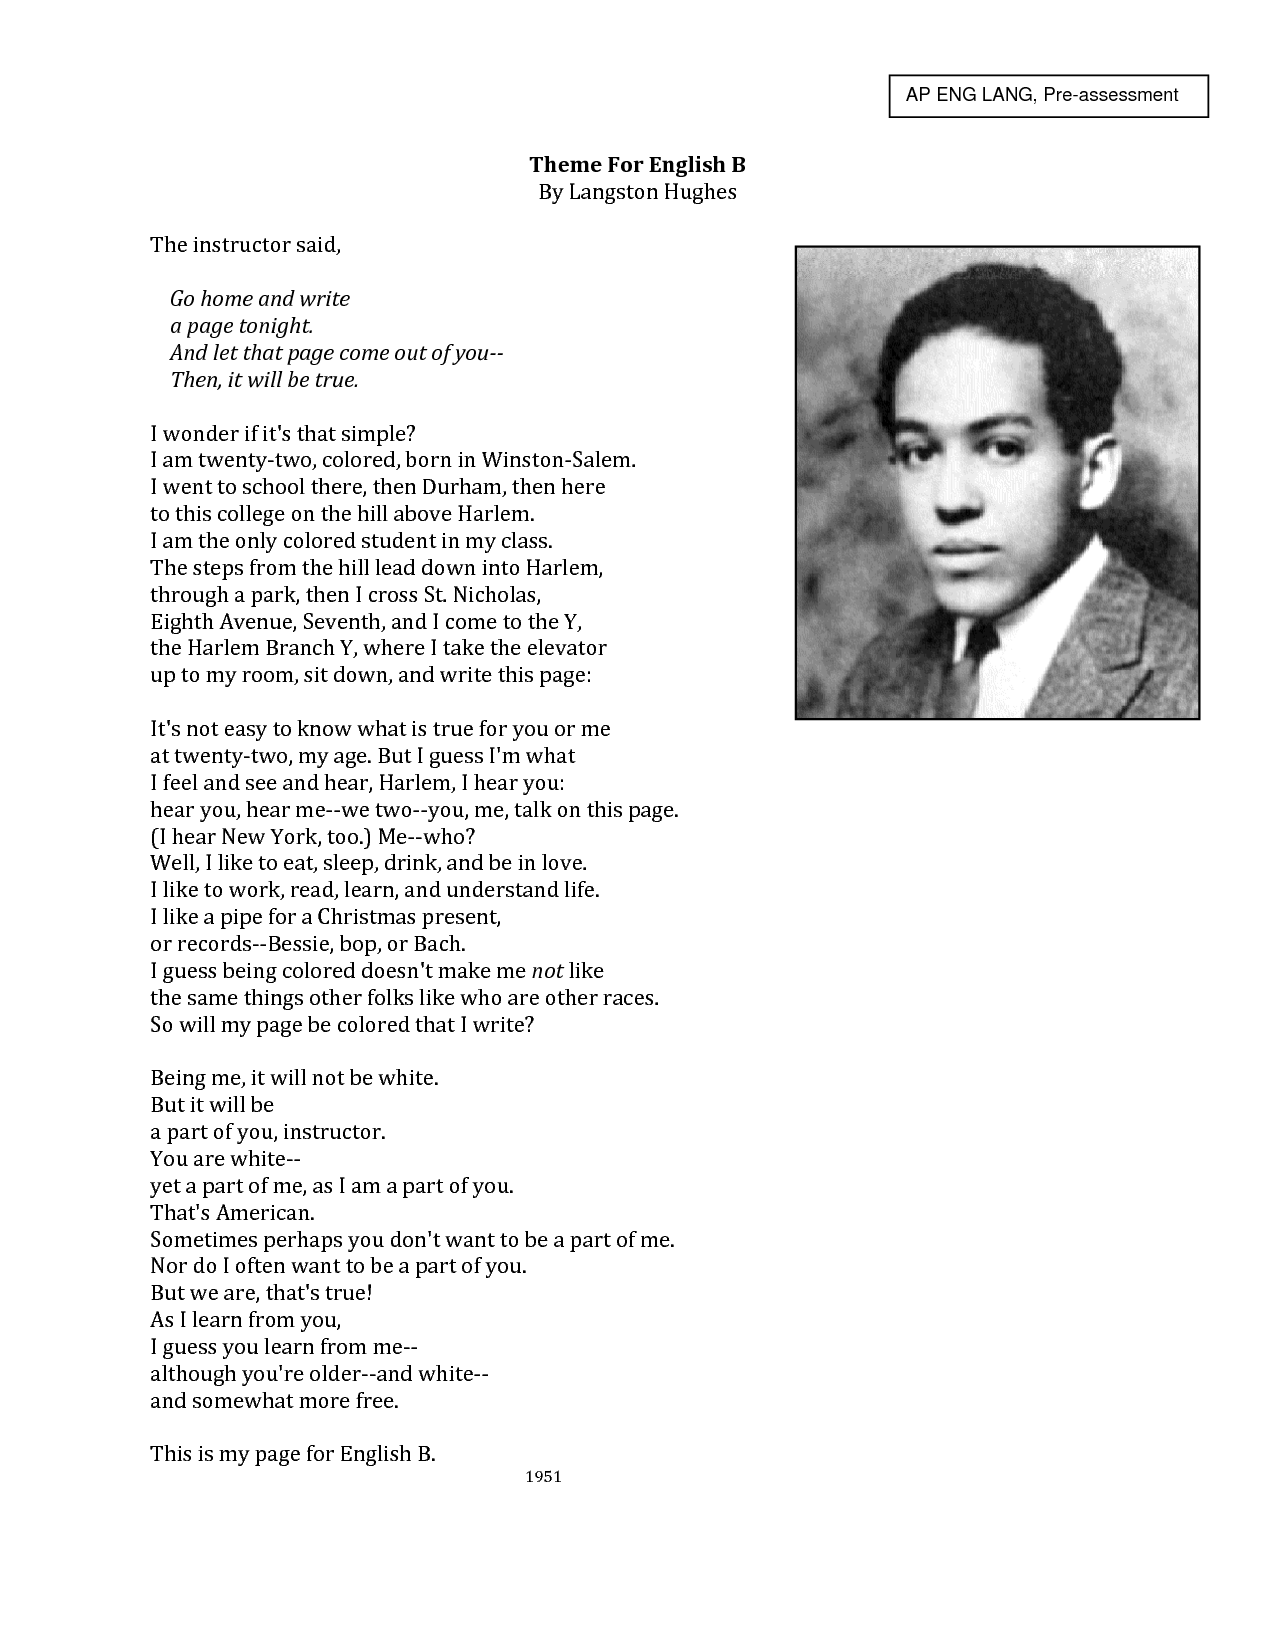 Incroyable Langston Hughes Essays 7 Steps To Writing Theme For English B Essay